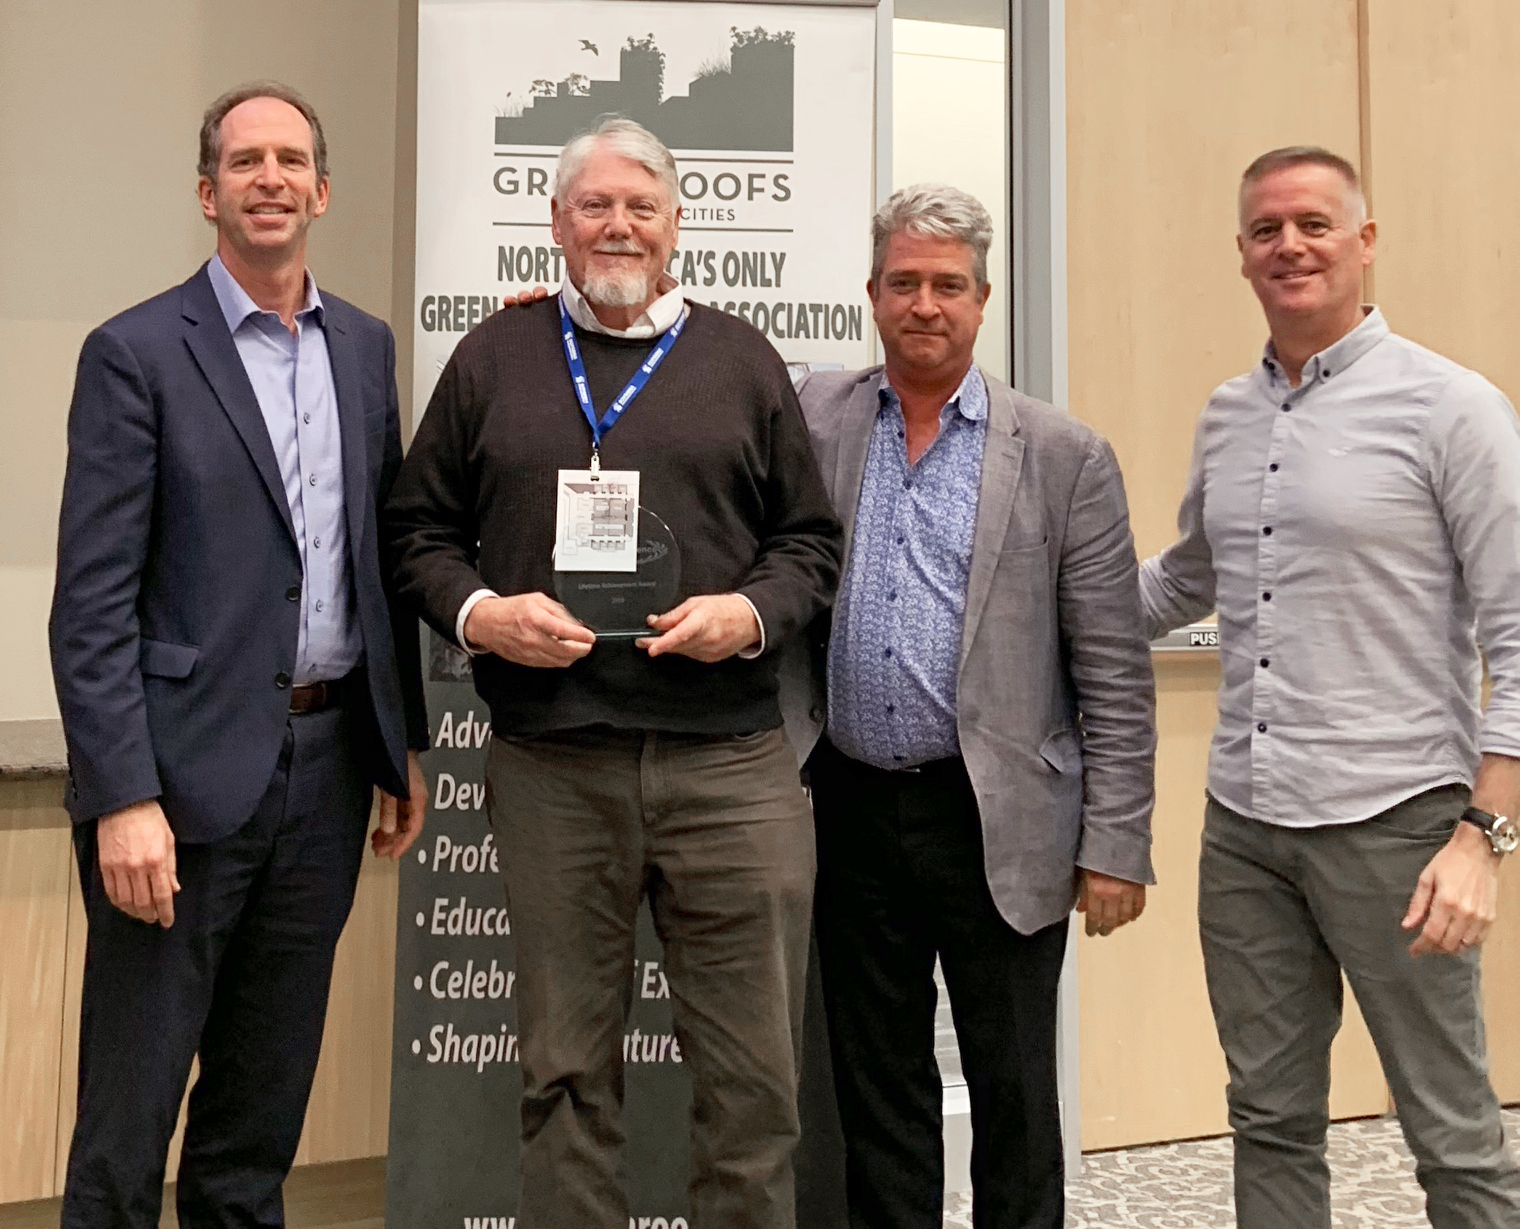 Richard K. Sutton (second from left) receives the Career Research Award in Green Roof Research from Green Roofs for Healthy Cities Research Committee Chair Reid Coffman (left), Green Roofs for Healthy Cities CEO Steven Peck (third from left) and Gray to Green Conference Chair Joe Barmore (right) Oct. 29 at the Gray to Green Conference in Washington, D.C.